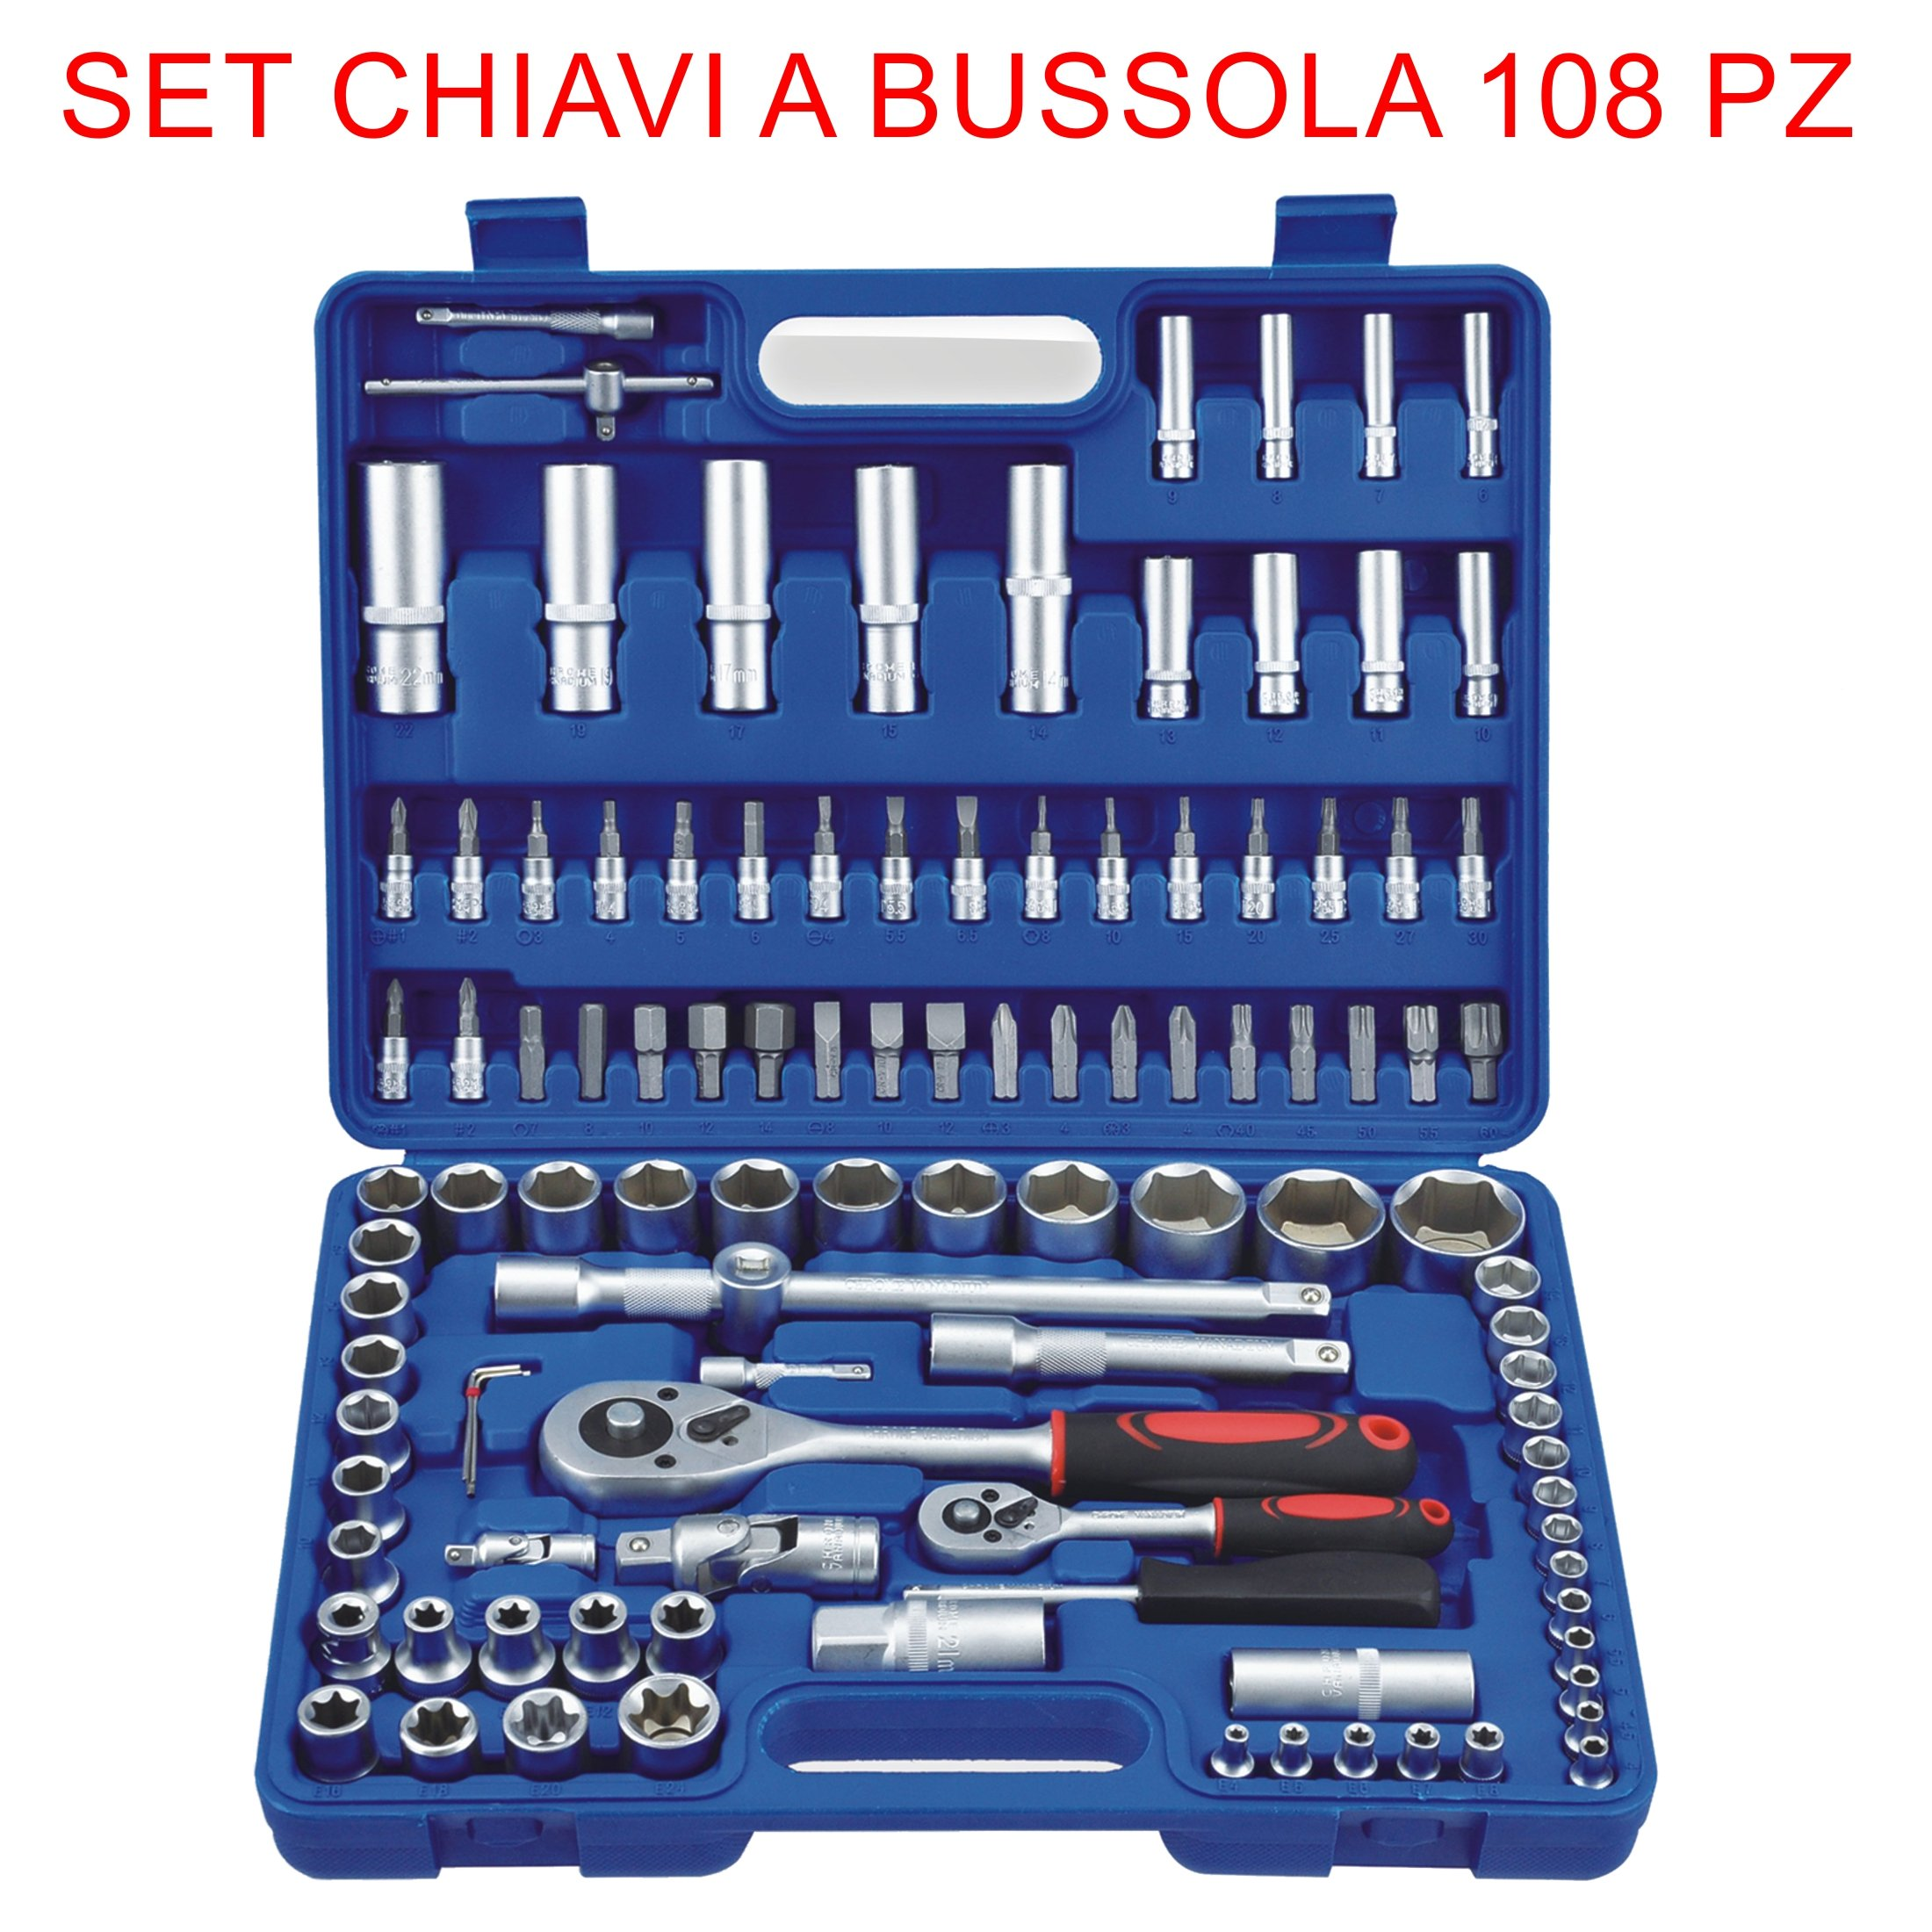 euronovità en-28907 Socket Ratchet Combination Spanners Set, 108 Pieces, Keys, with Inserts, Hand Tools for Work by euronovità